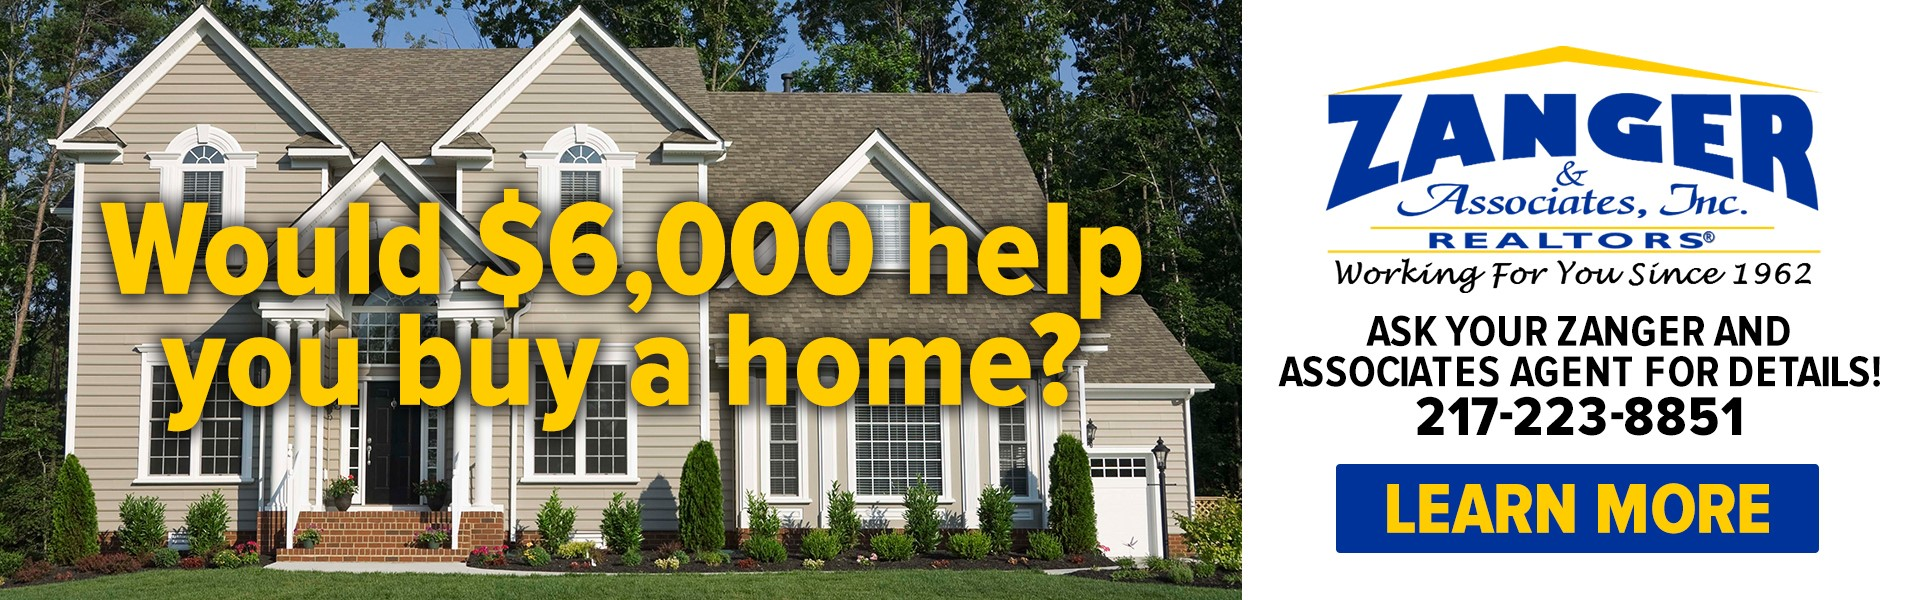 Would $6,000 help you buy a home?